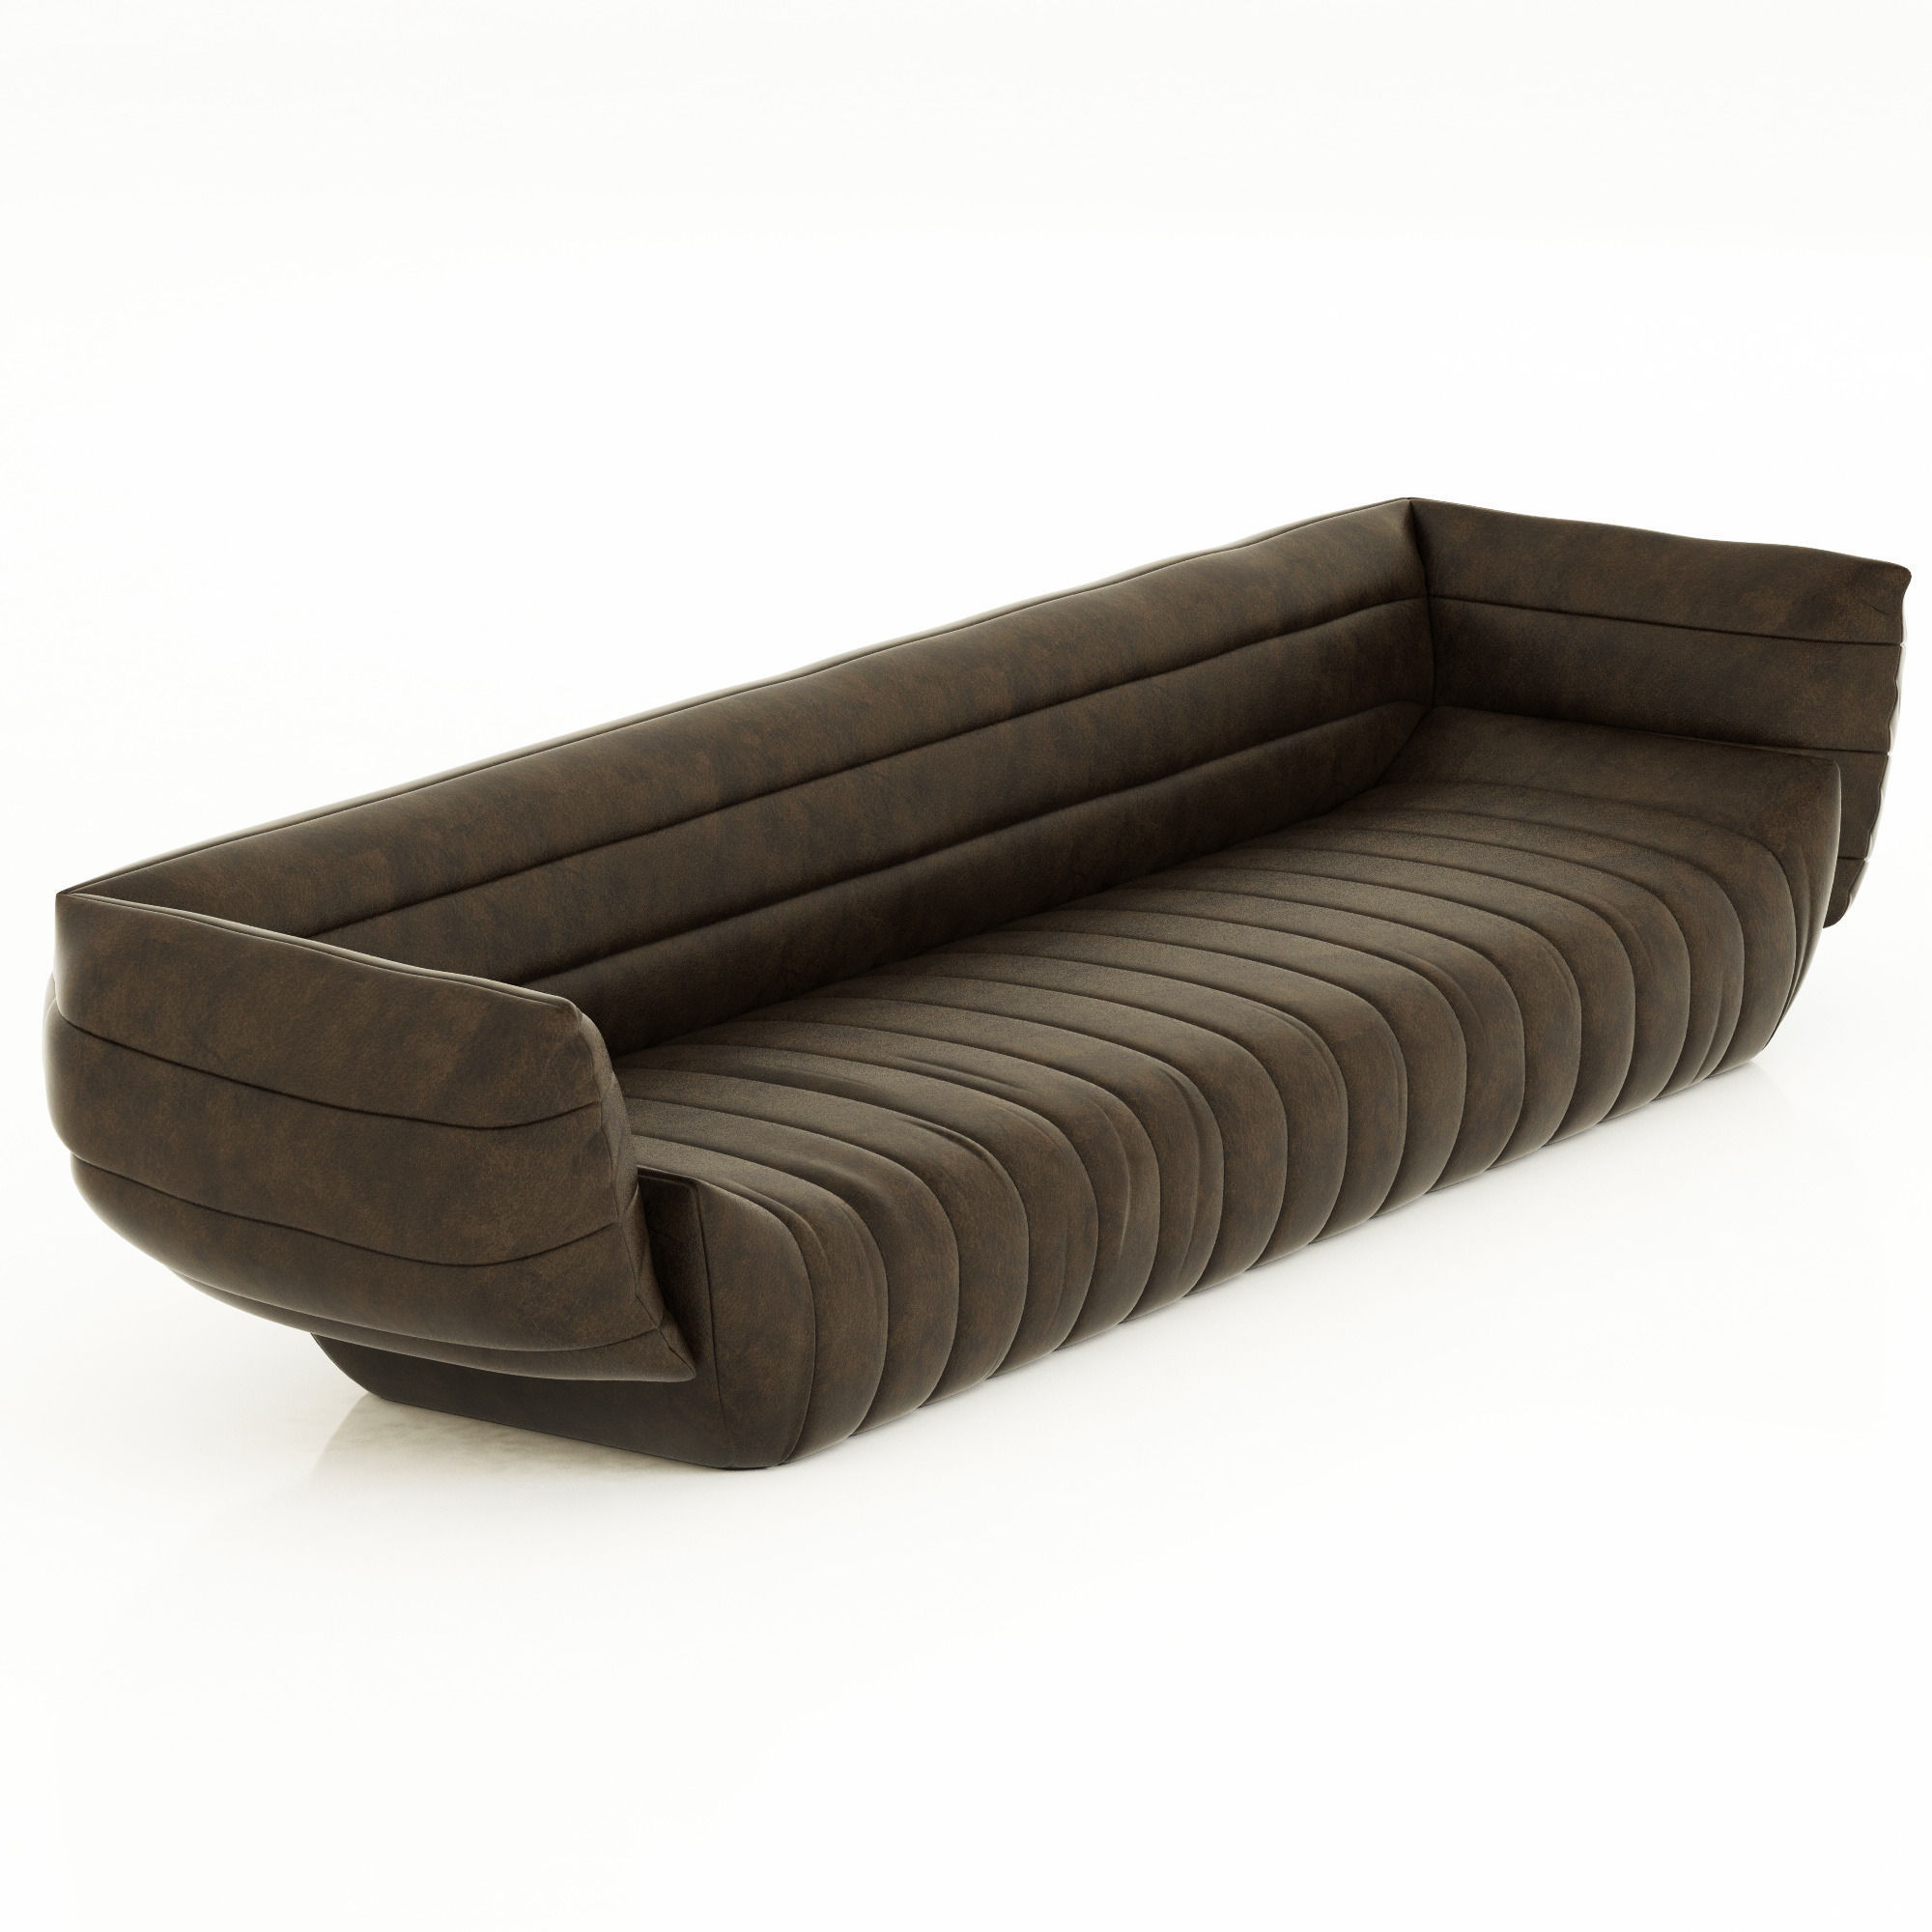 3D Model Baxter Tactile Sofa CGTrader